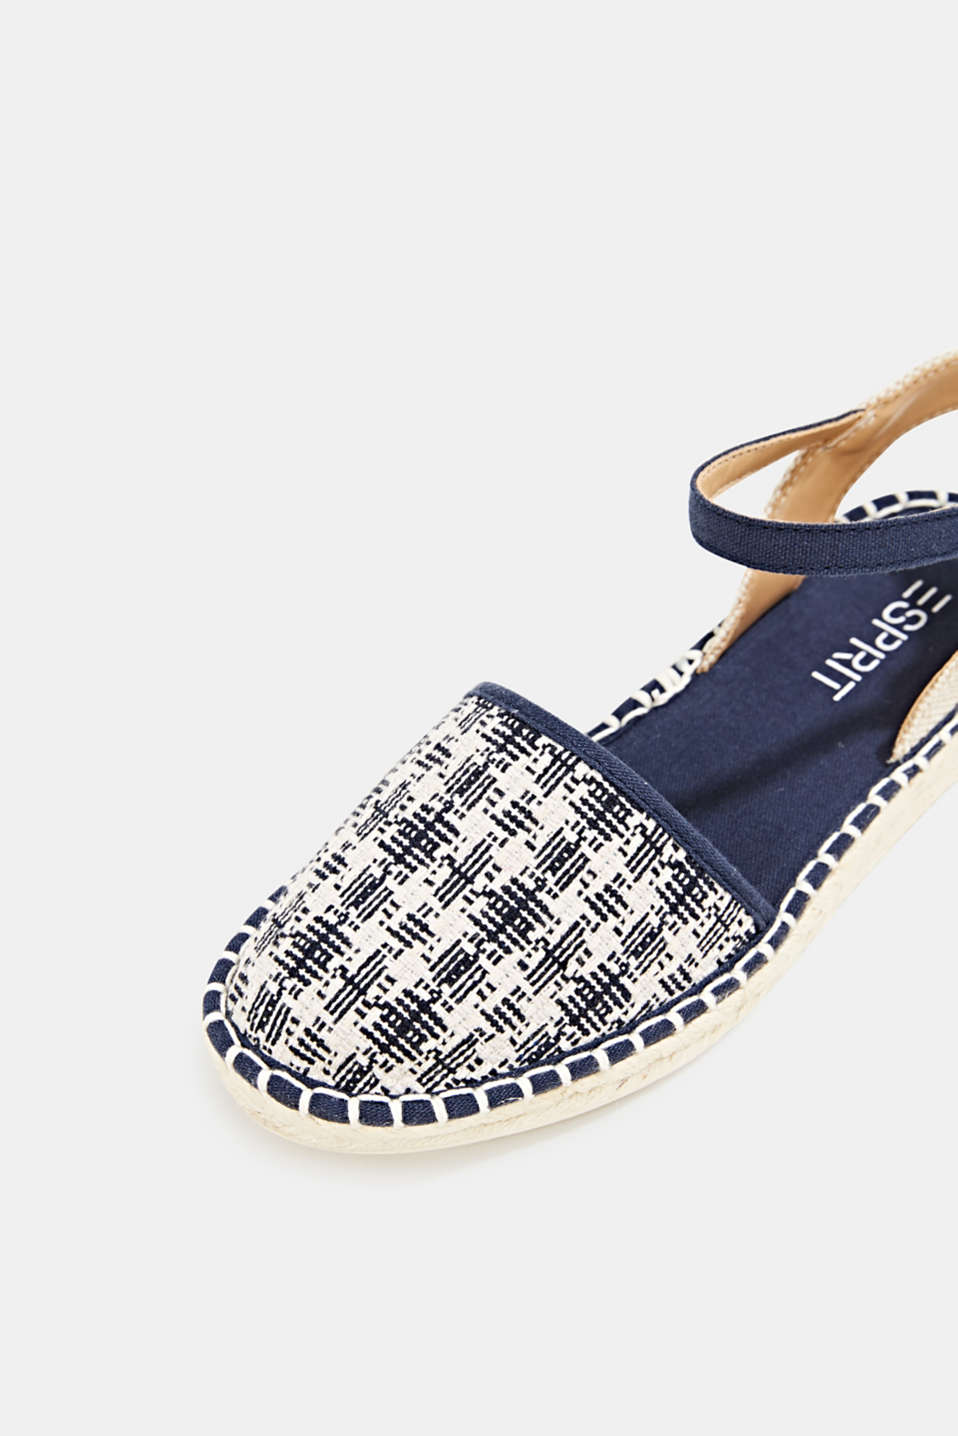 Espadrille sandals with a check pattern, NAVY, detail image number 4